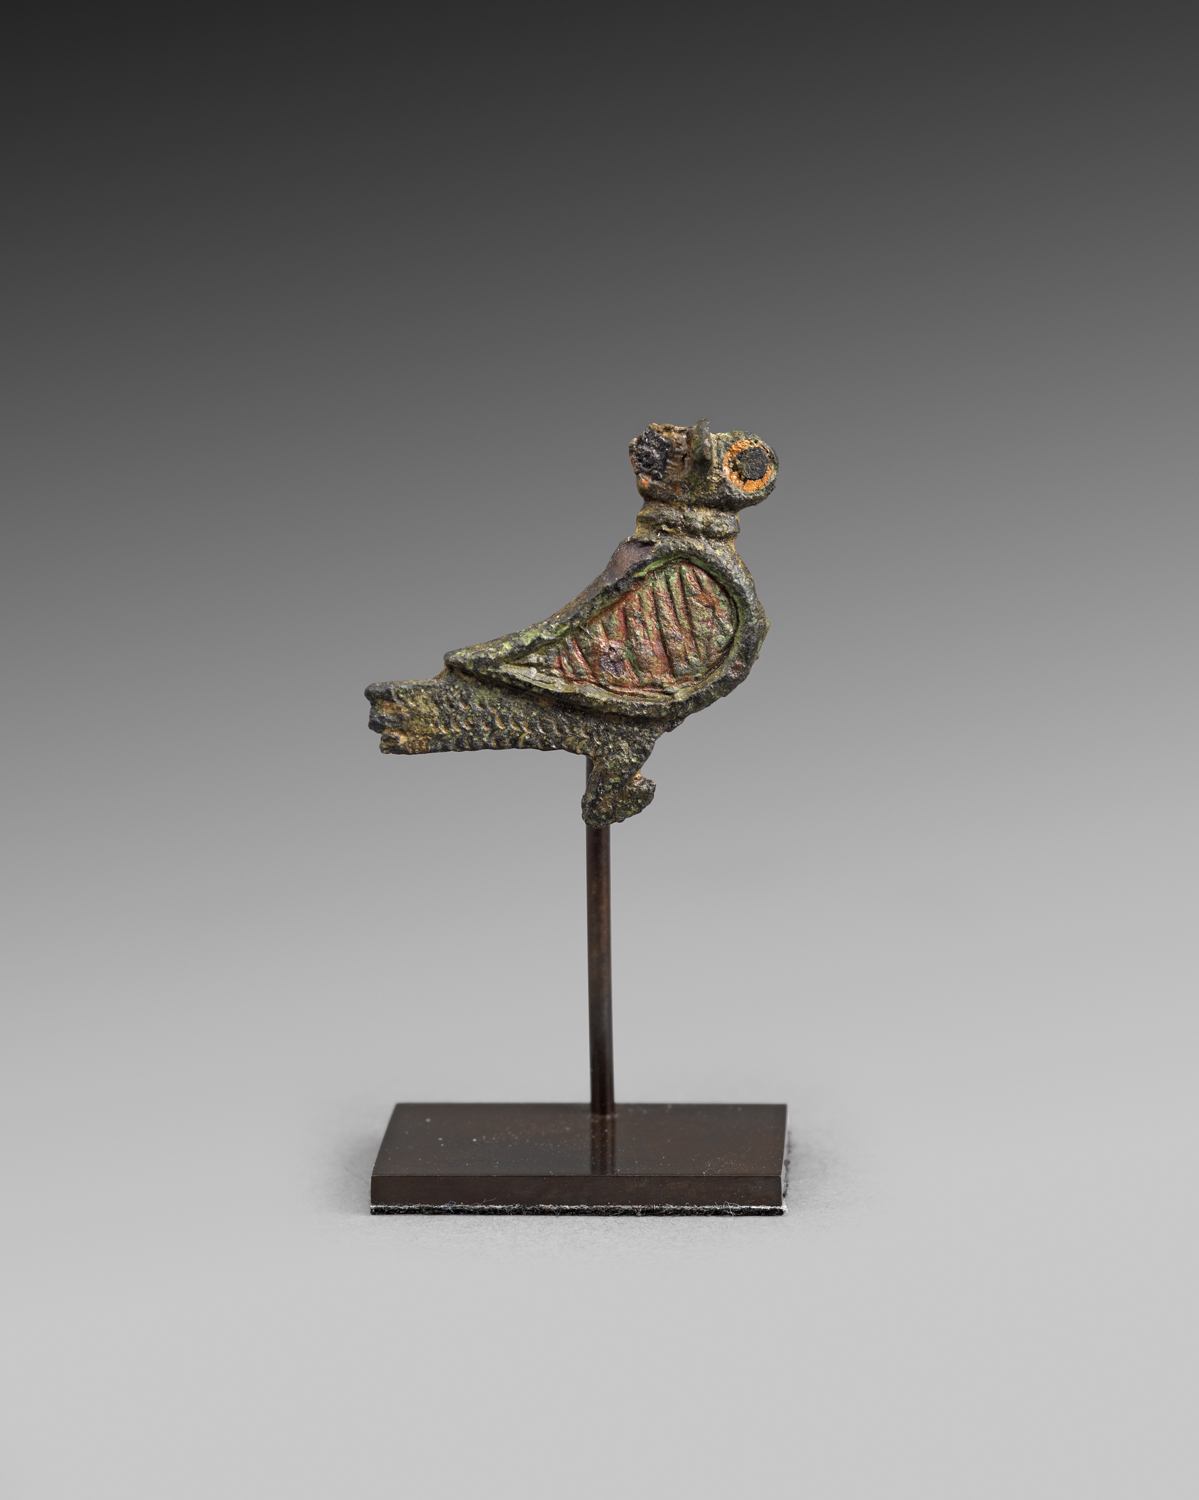 Gallo-Roman Owl Plate Brooch , 2nd - 3rd century C.E., Bronze with enamel inlays, 2.6 x 2.8 cm, Courtesy Rupert Wace Ancient Art, London